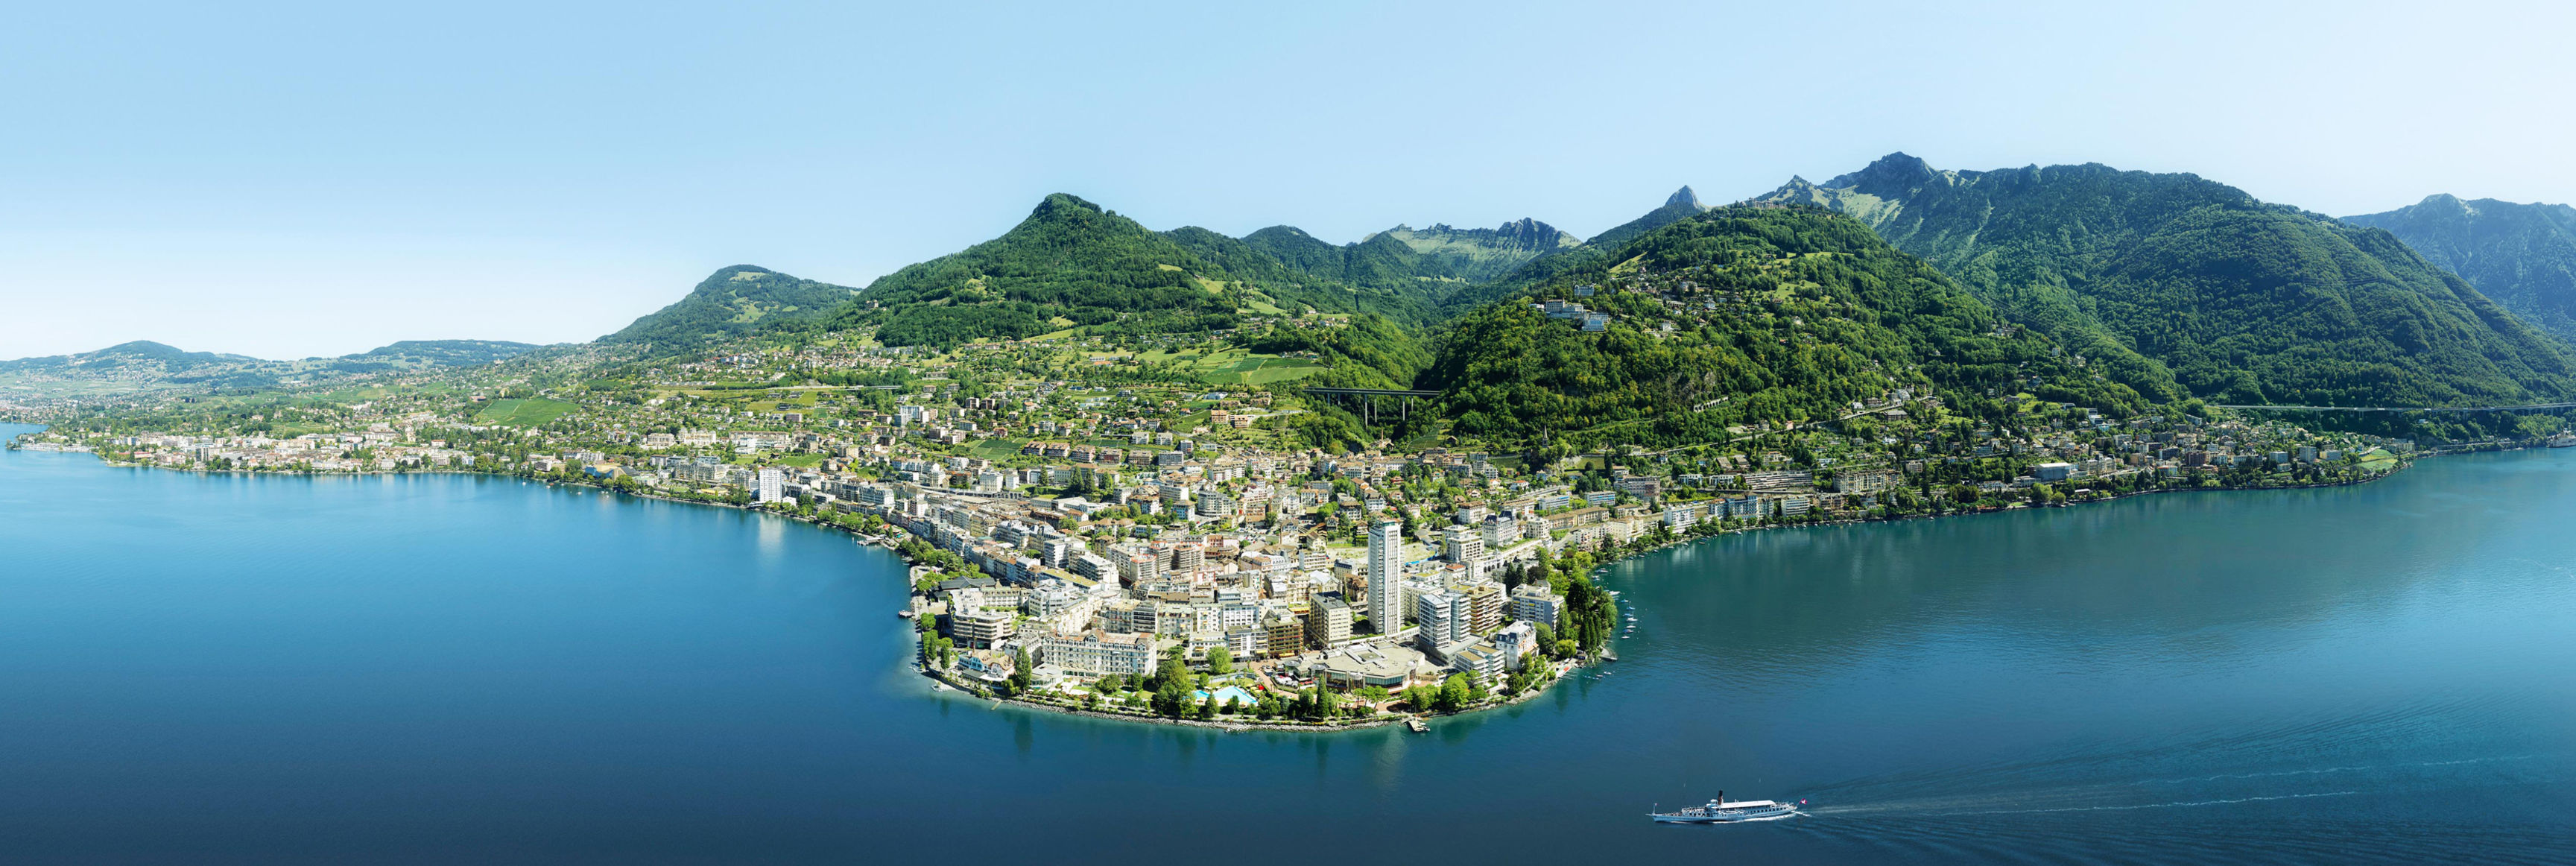 Montreux city